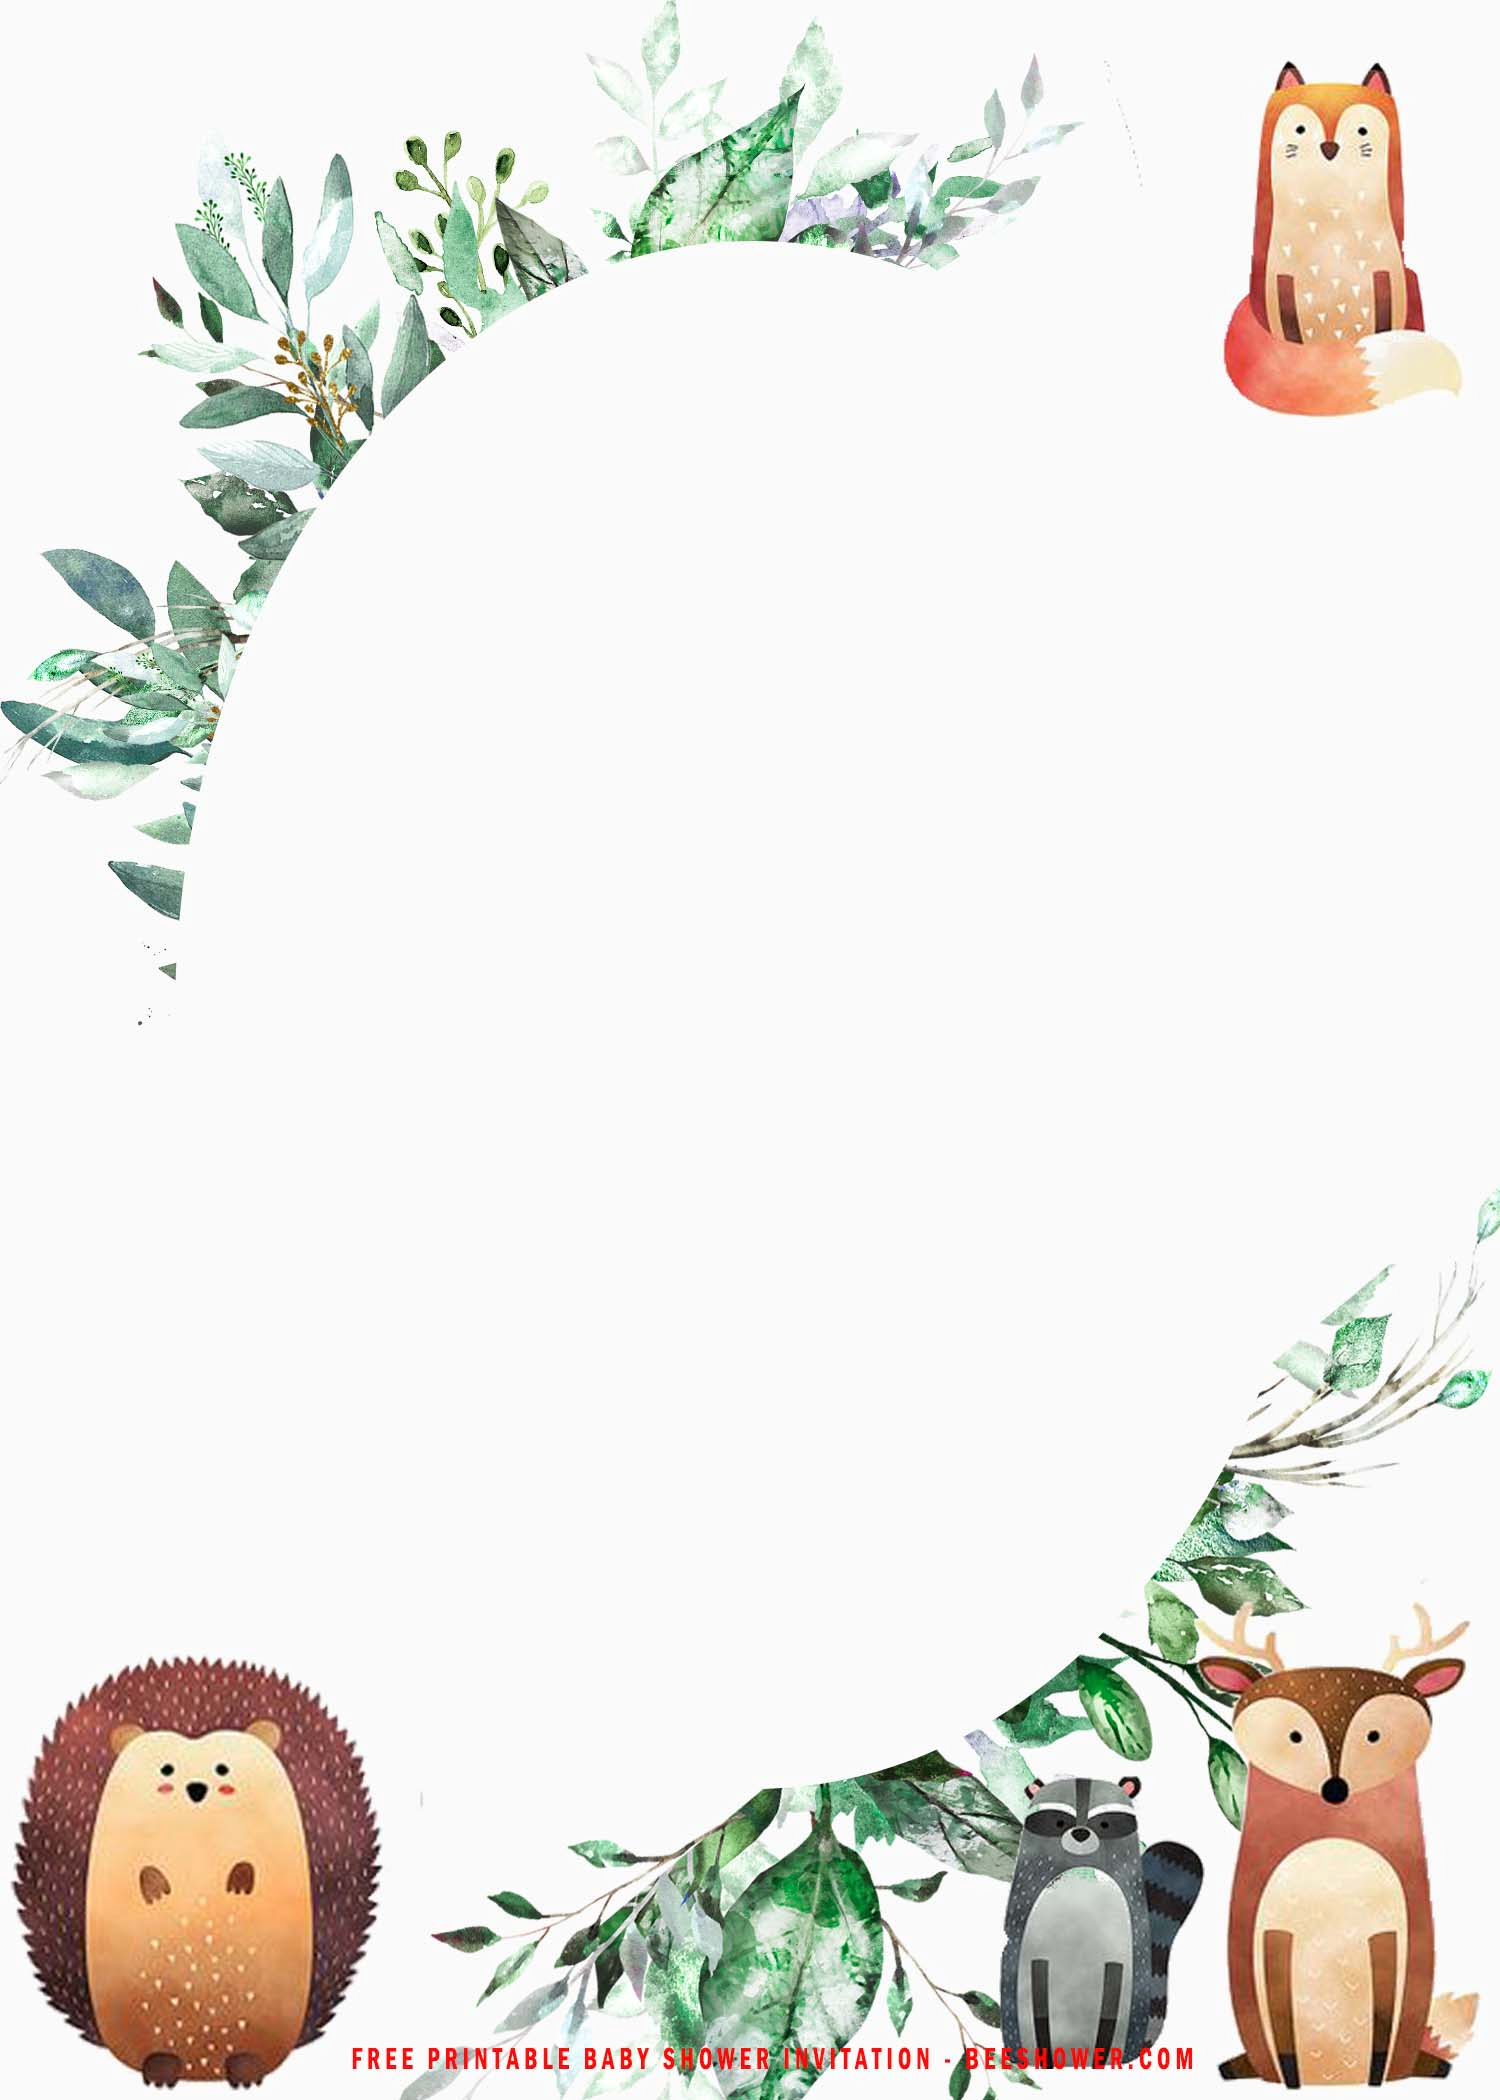 Free Printable Cute Woodland Baby Shower Party